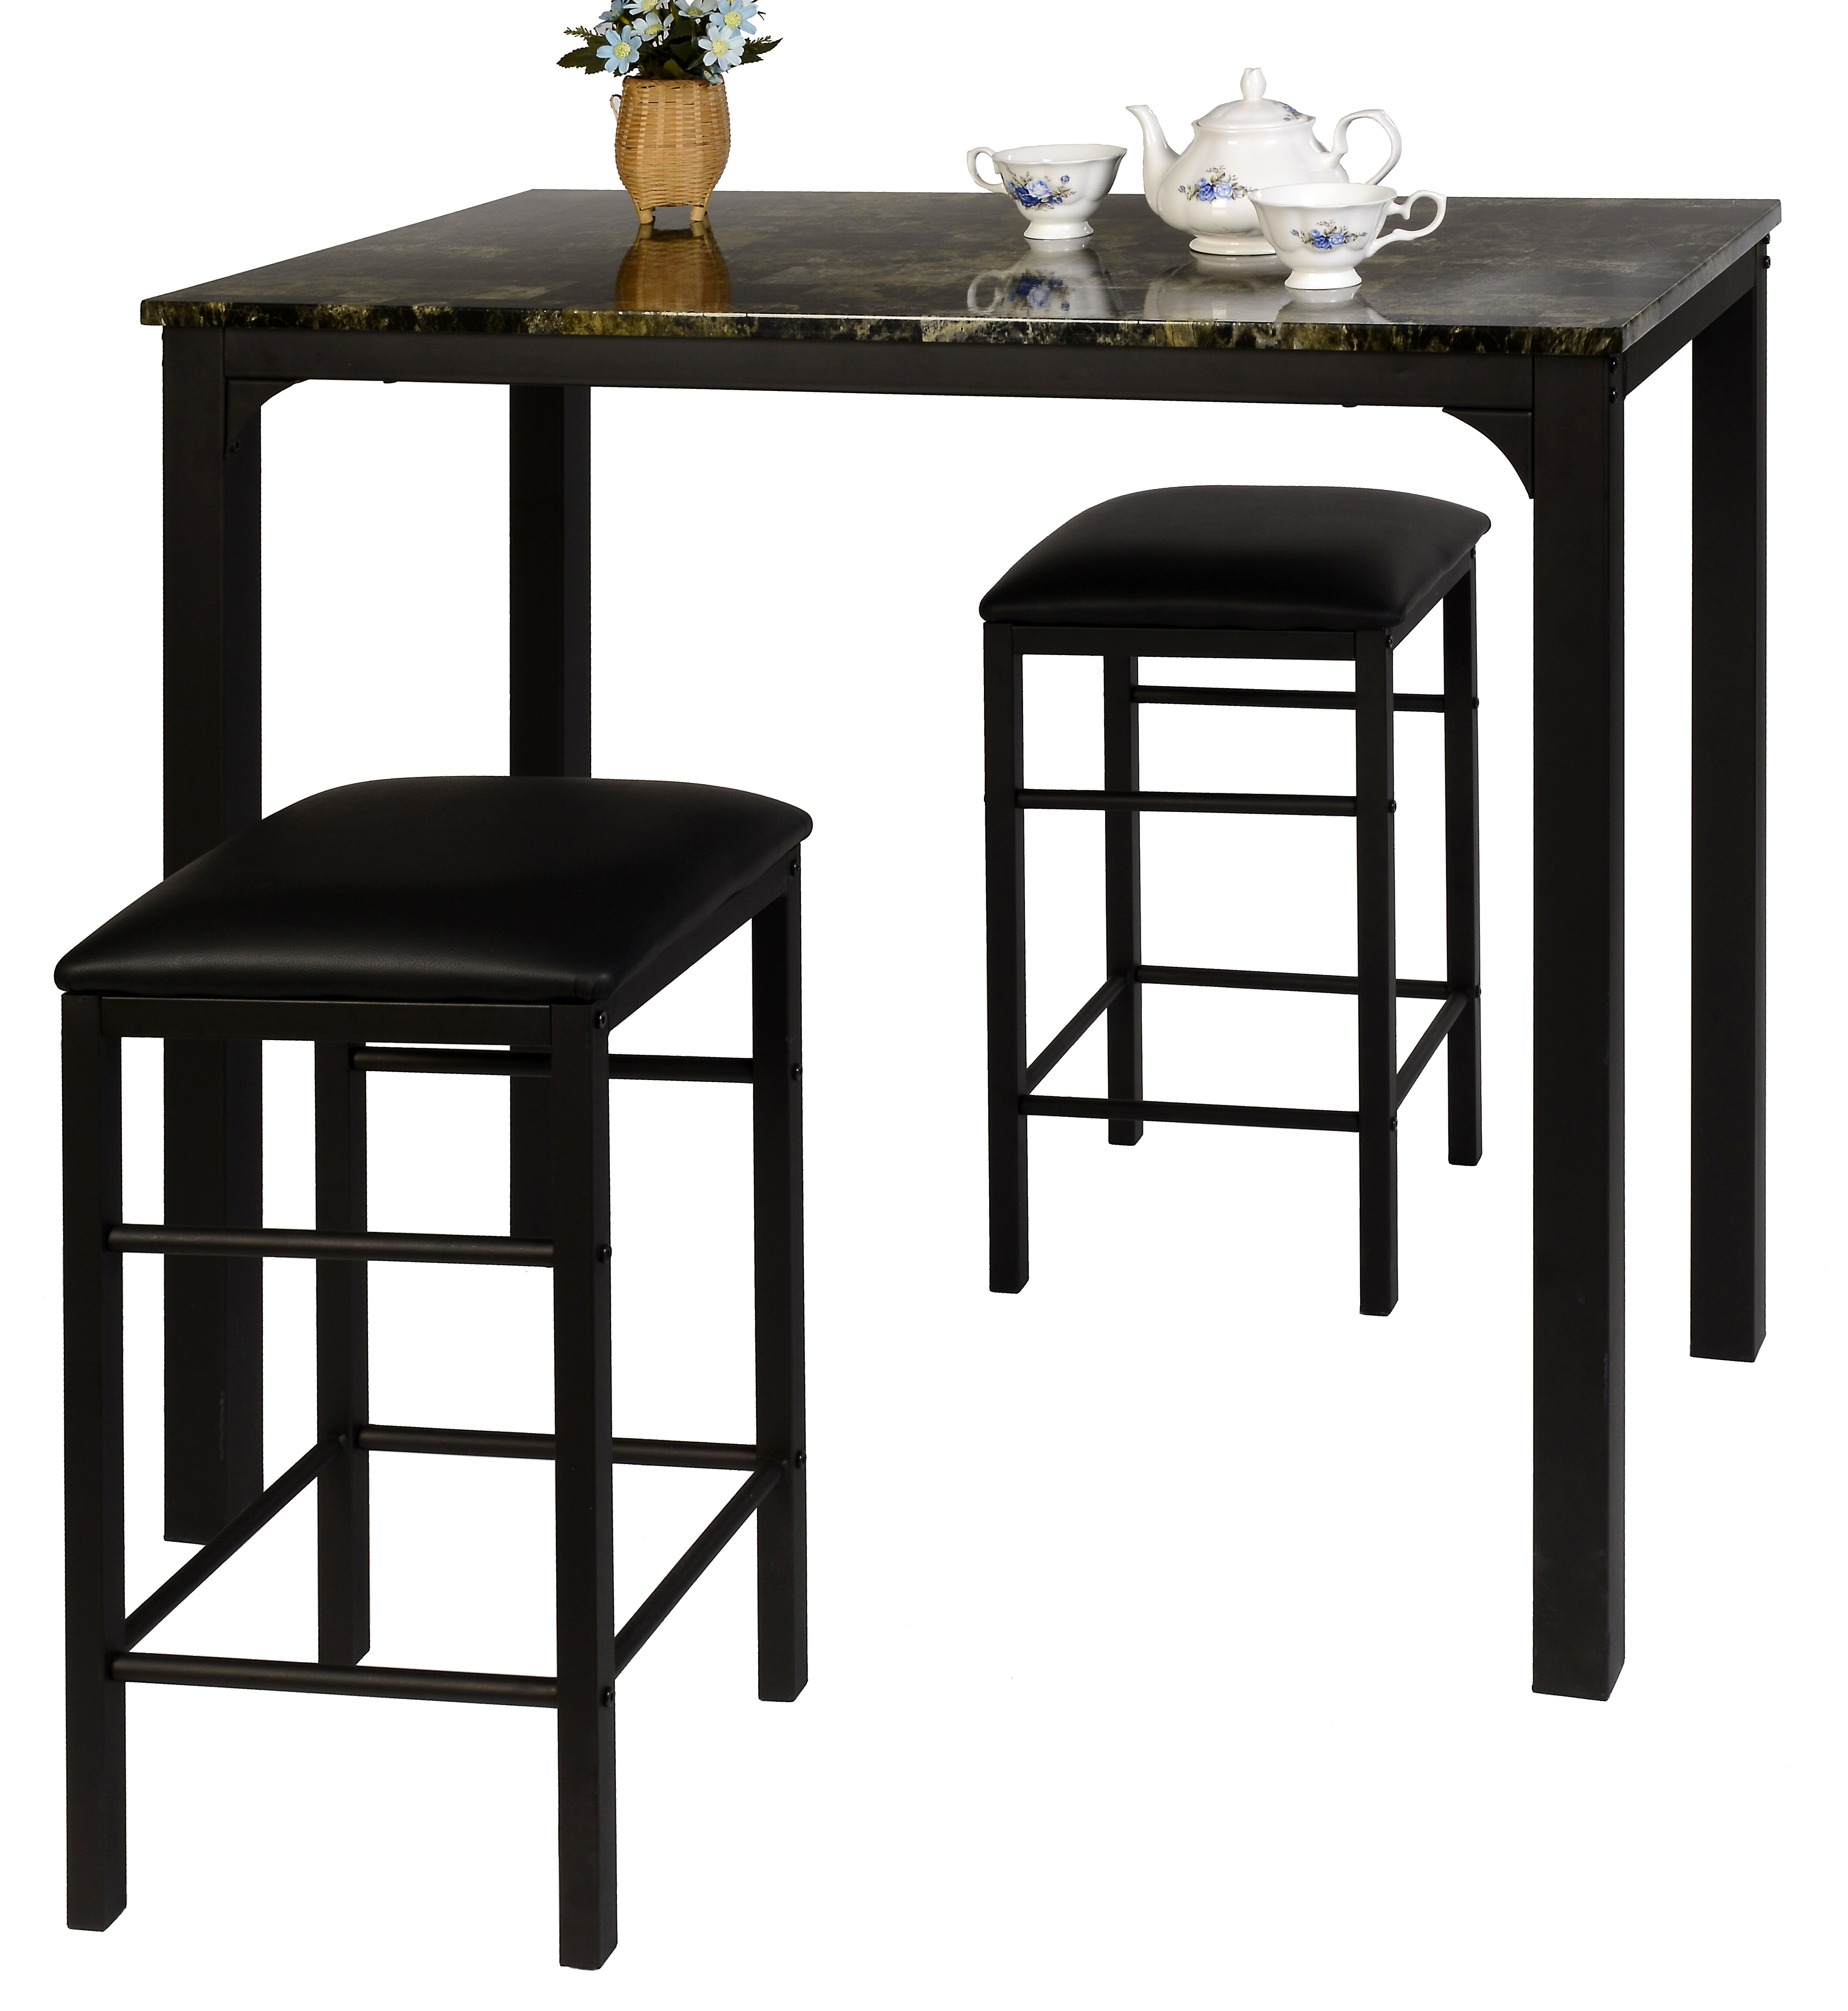 Wayfair Within Mitzel 3 Piece Dining Sets (View 21 of 25)